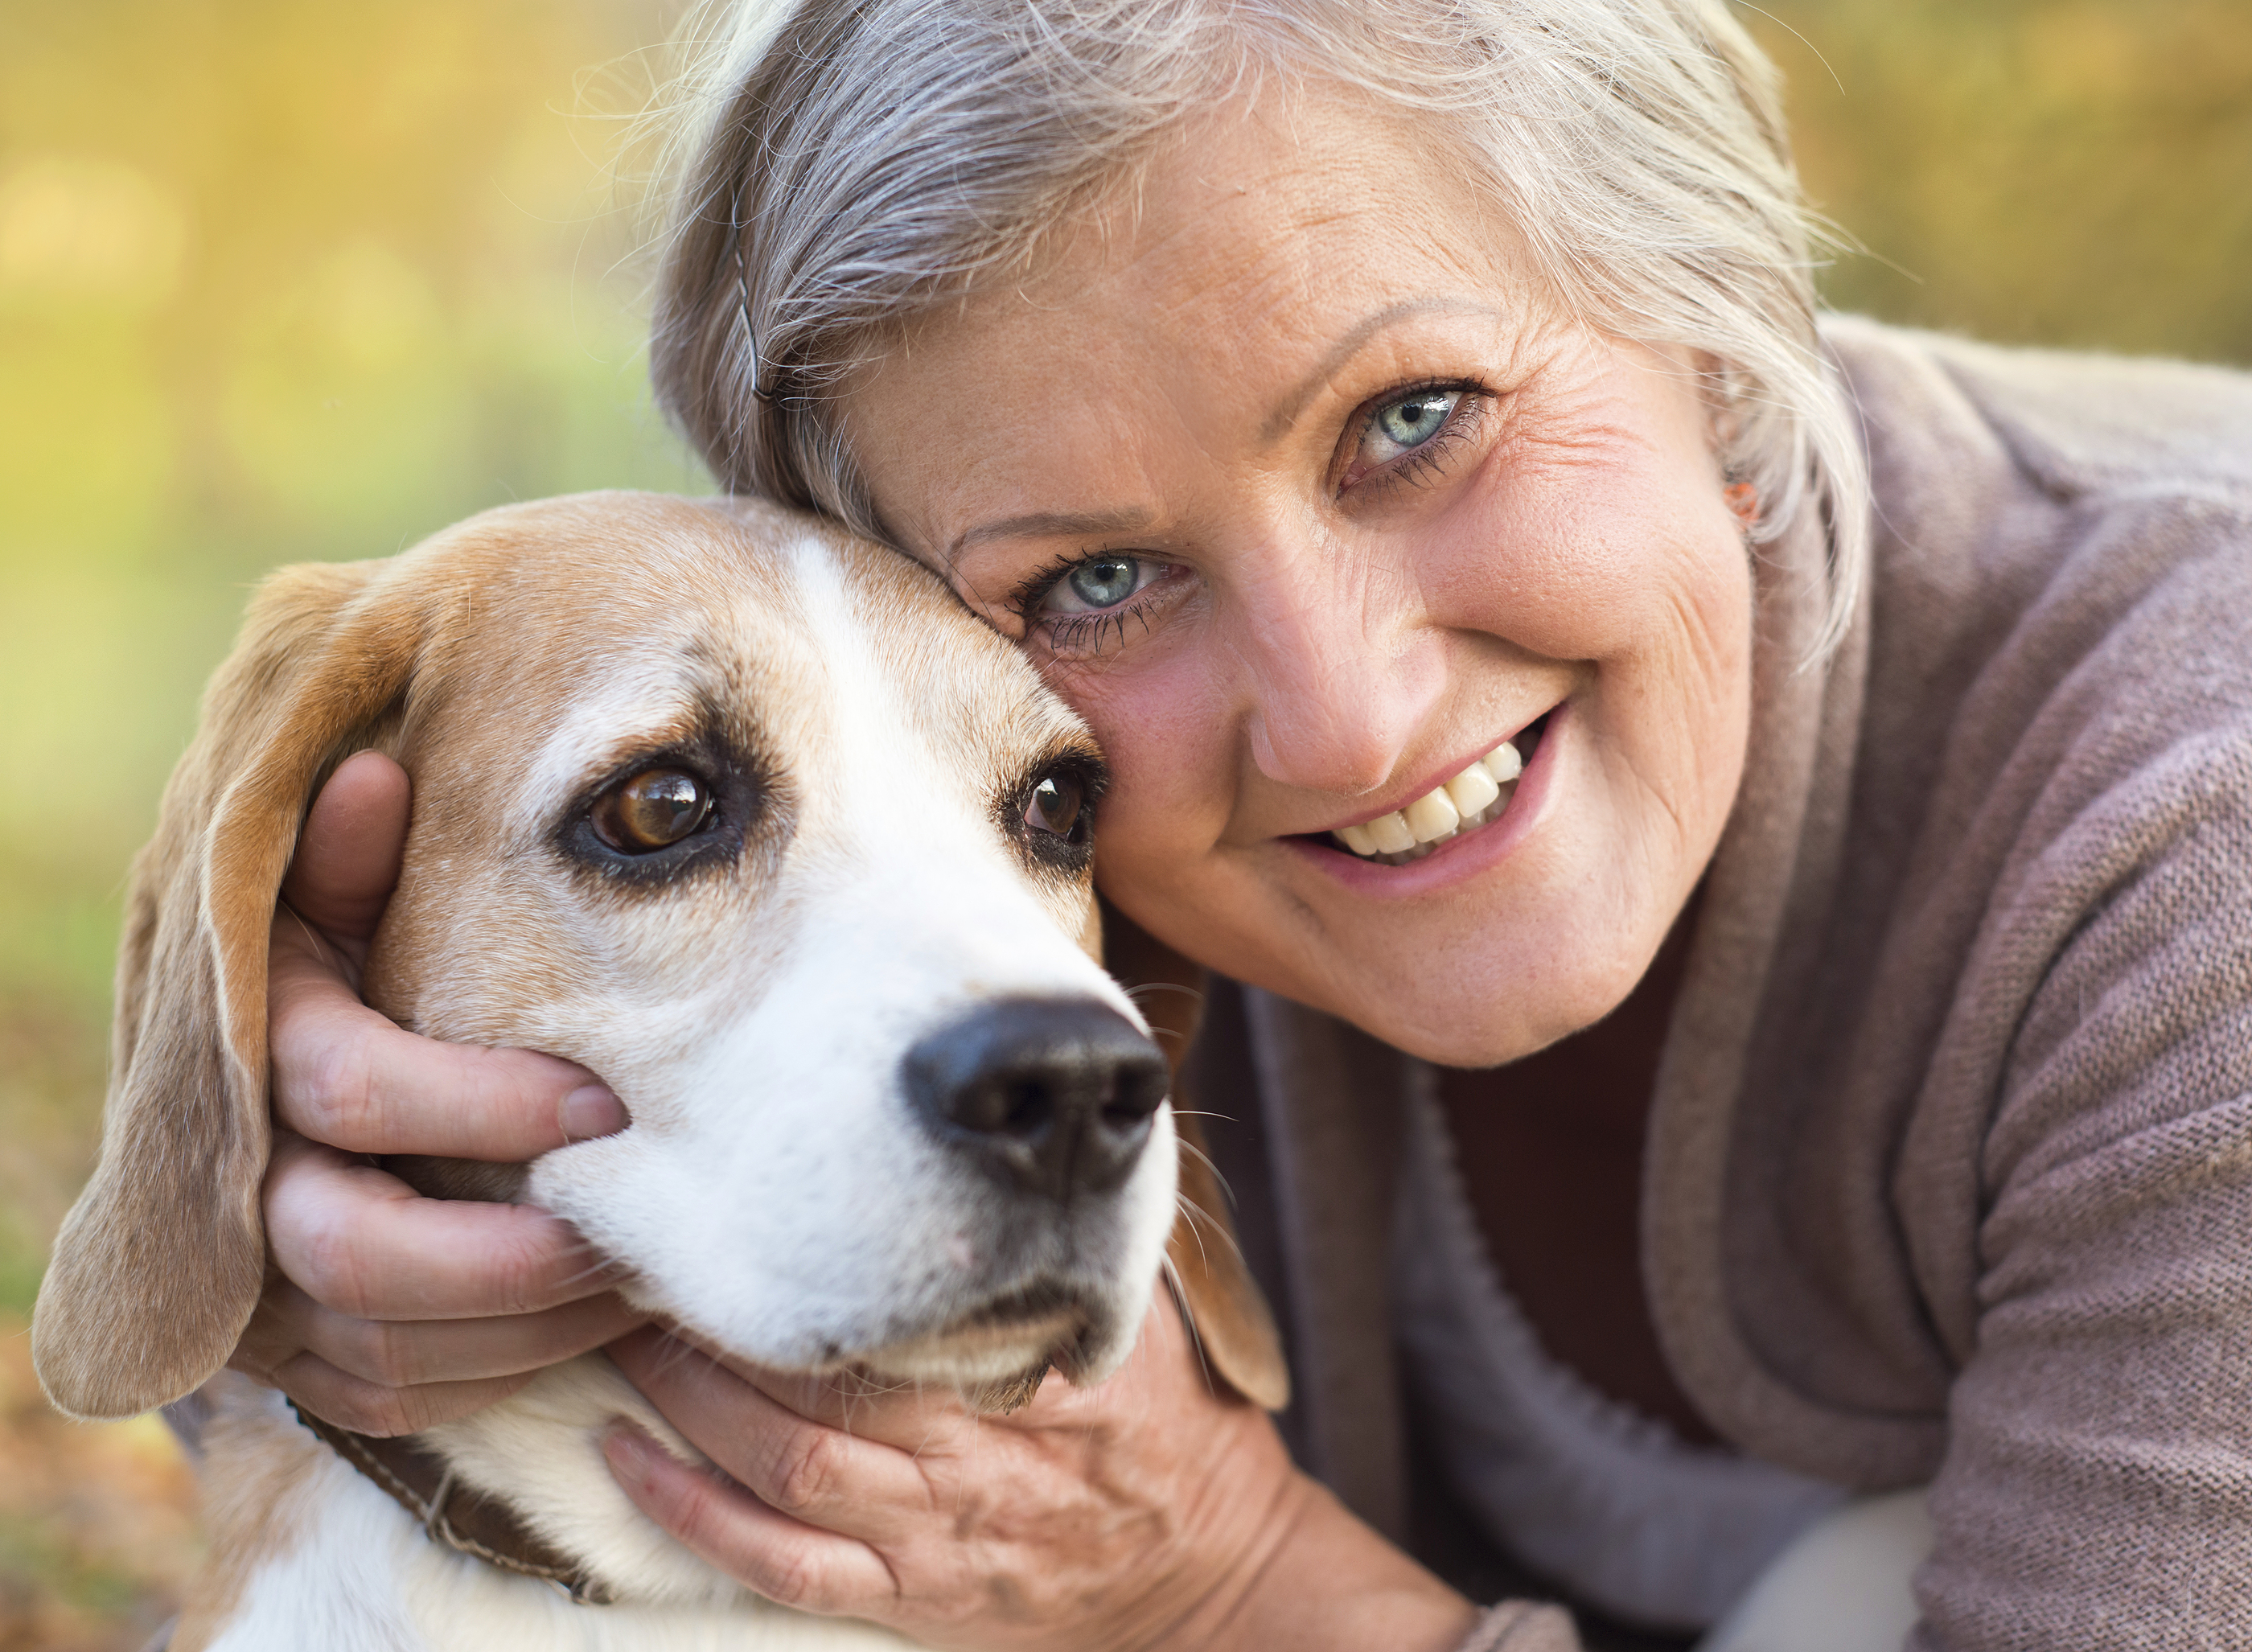 How is dog care becoming easier?